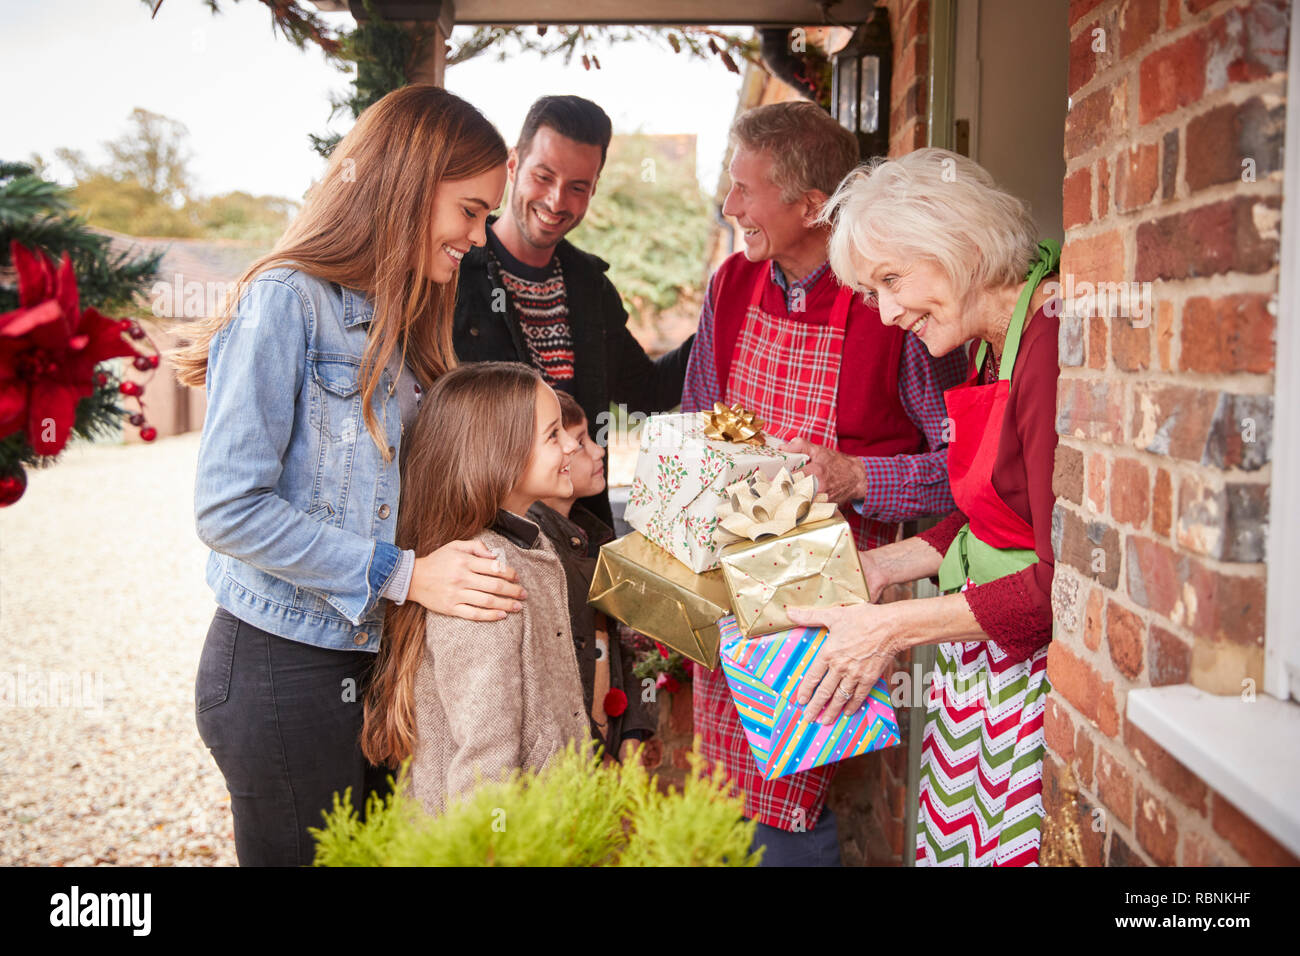 Family Being Greeted By Grandparents As They Arrive For Visit On Christmas Day With Gifts - Stock Image